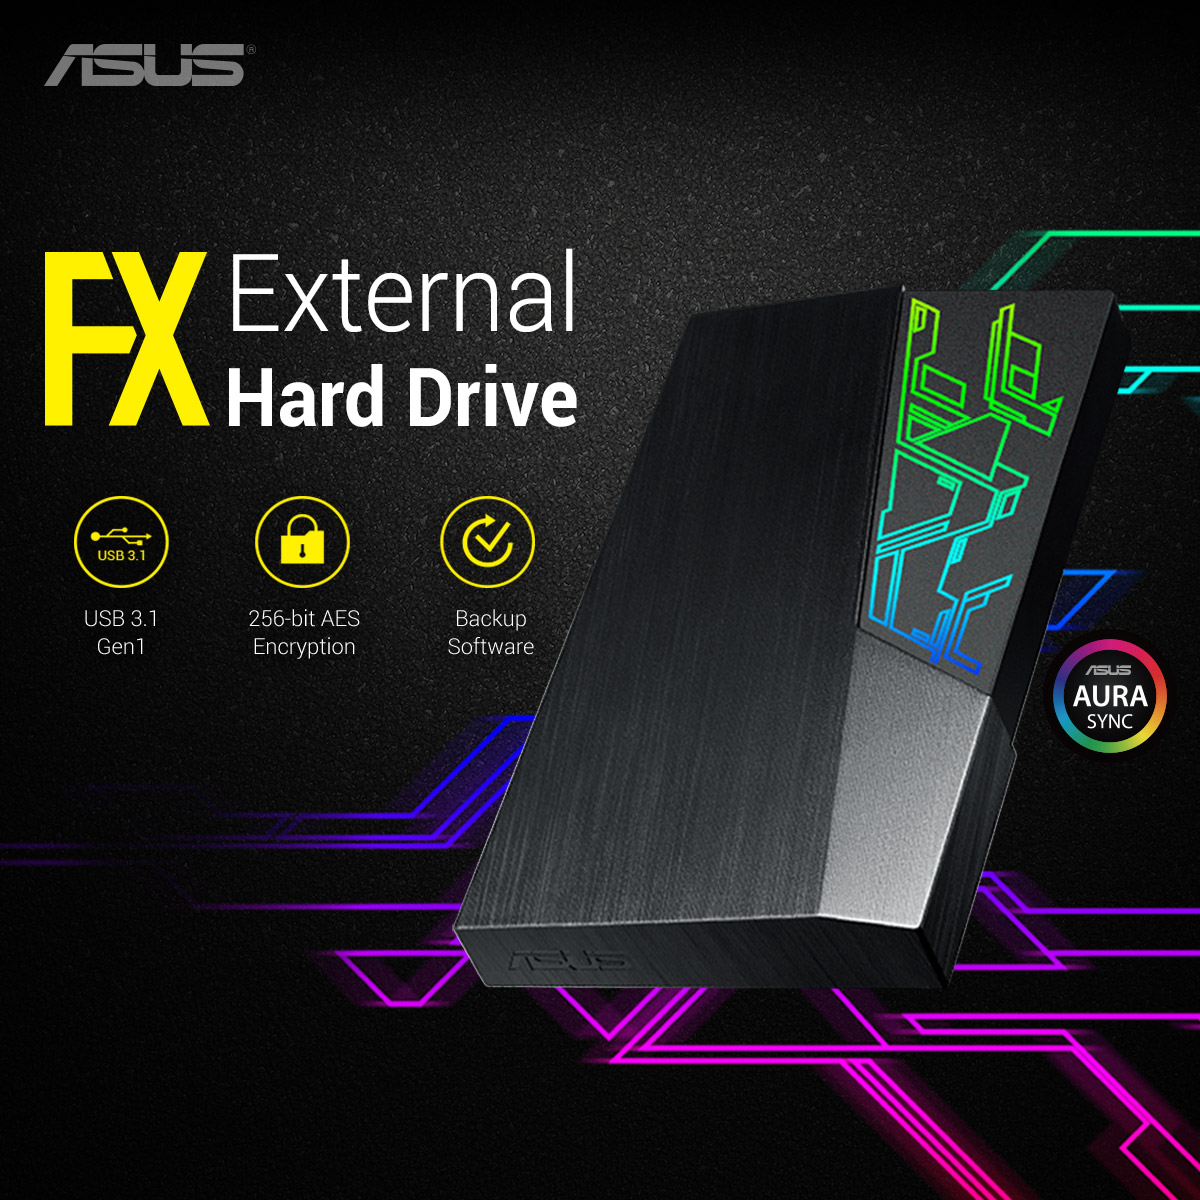 It's the storage for the new generation. The ASUS FX HDD has storage and style to secure your files with fast transfer speeds and cool Aura Sync lighting. #POTD #ProductOfTheDay 🏎️ USB 3.1 Gen1 transfer speed 🔒 256-bit AES encryption 🔄 software backup 🛒 https://t.co/GNWleSZGYU https://t.co/0HDBMdiYQc